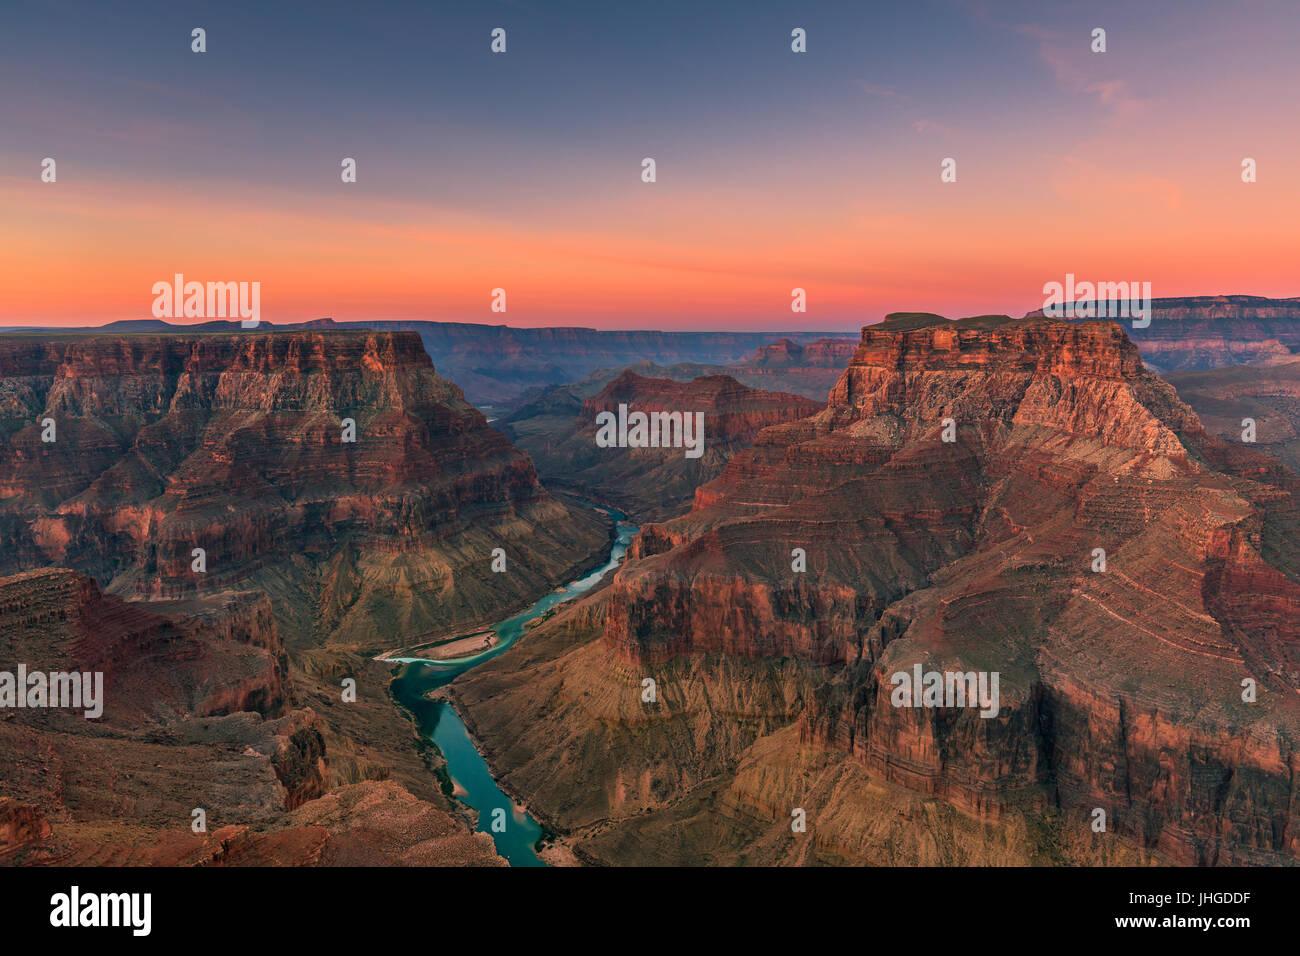 Zusammenfluss von Main und Little Colorado, Grand Canyon National Park, Arizona, USA Stockbild